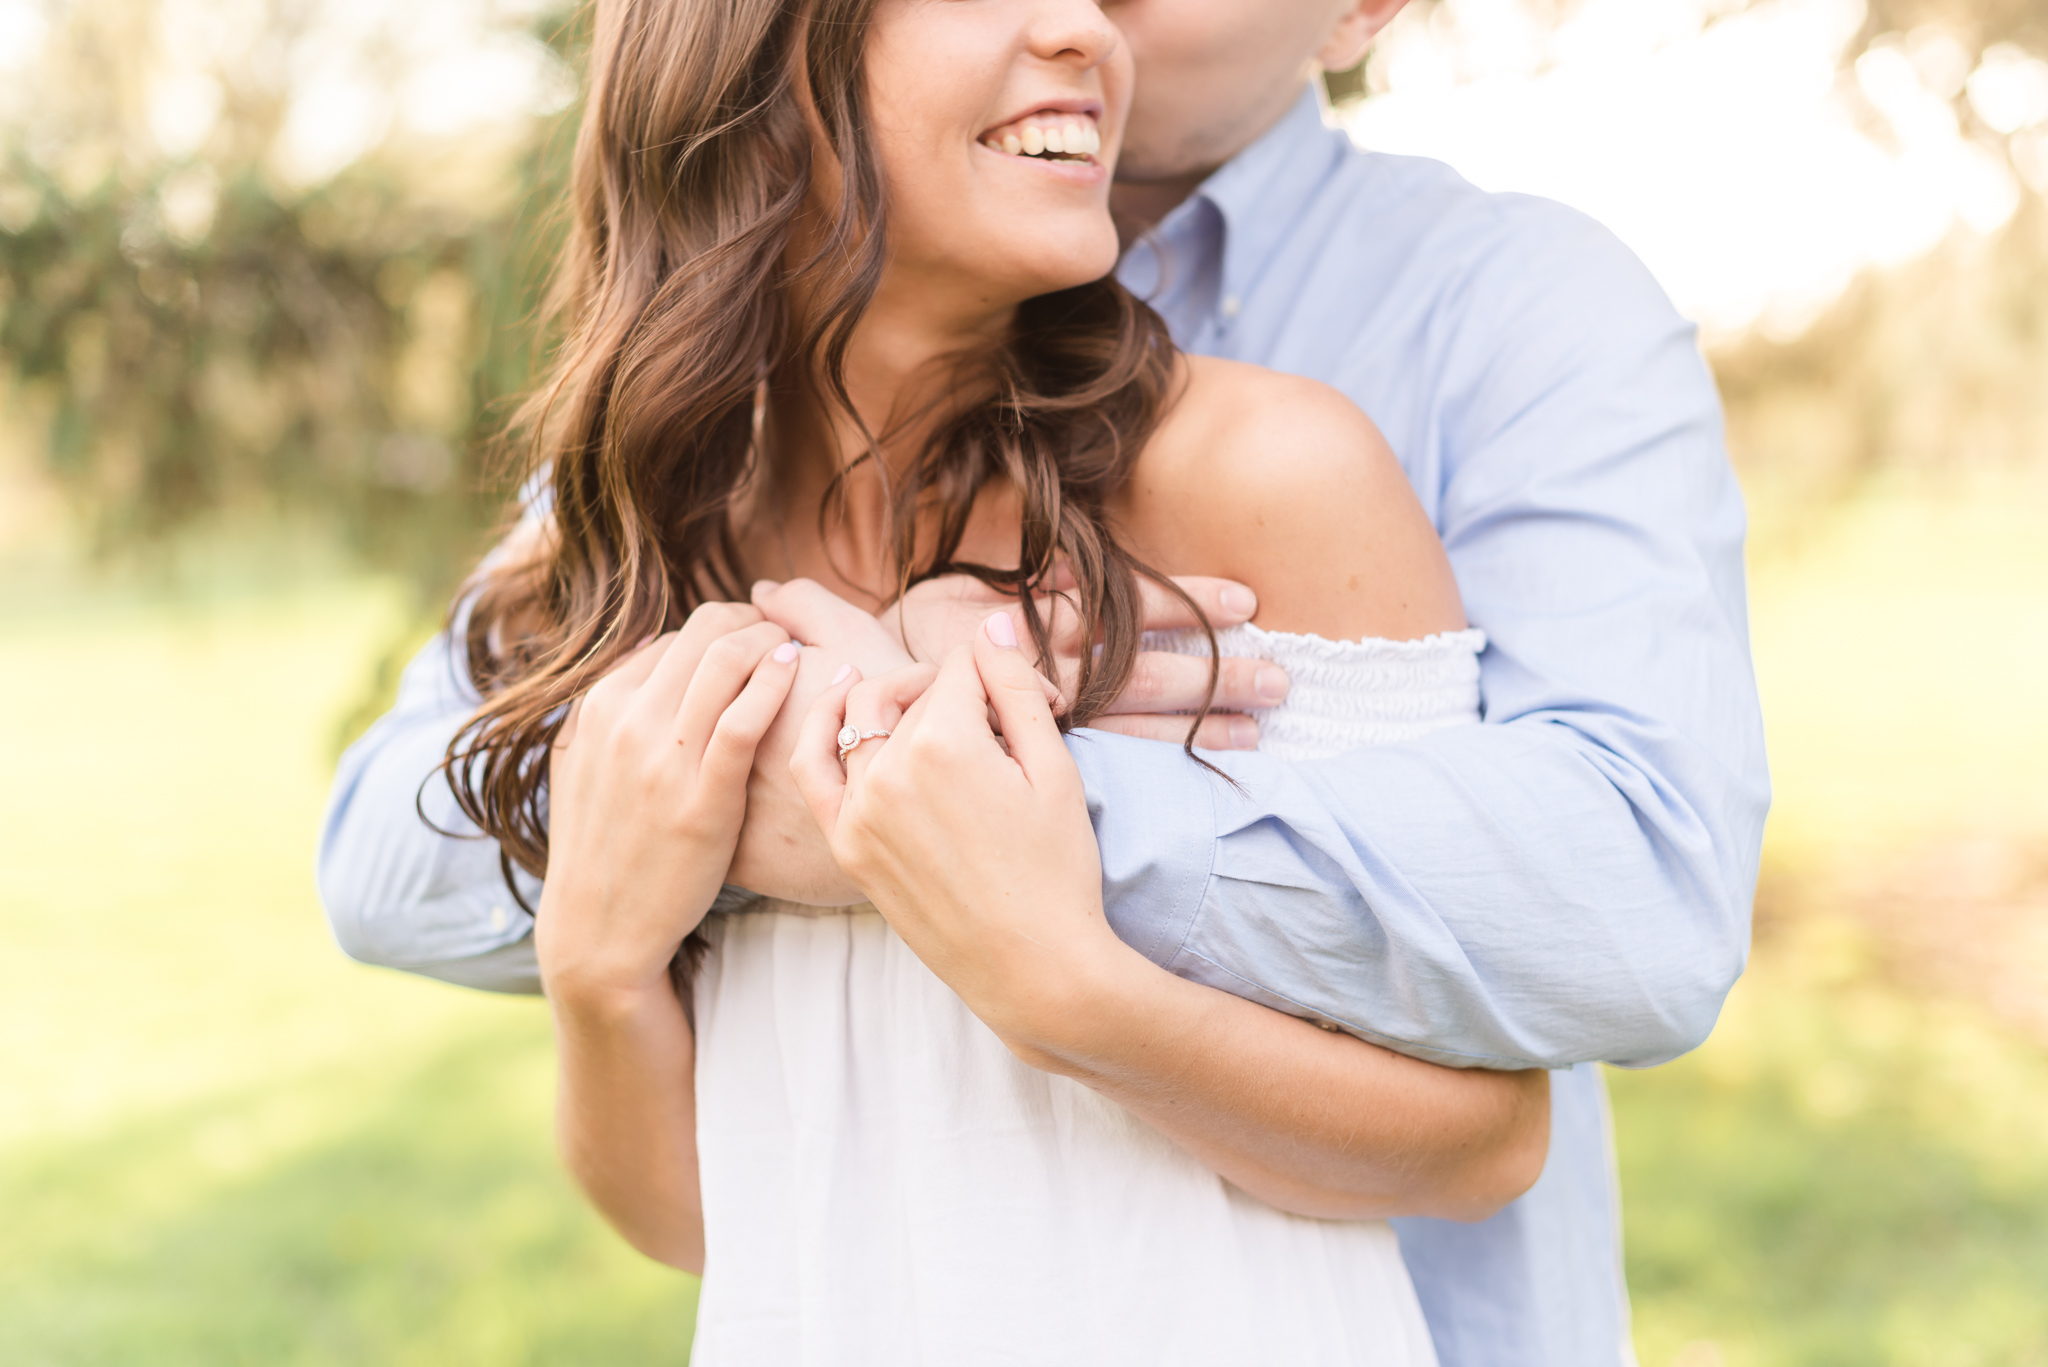 Holliday Park Engagement Session Indianapolis Wedding Photographer-4.jpg